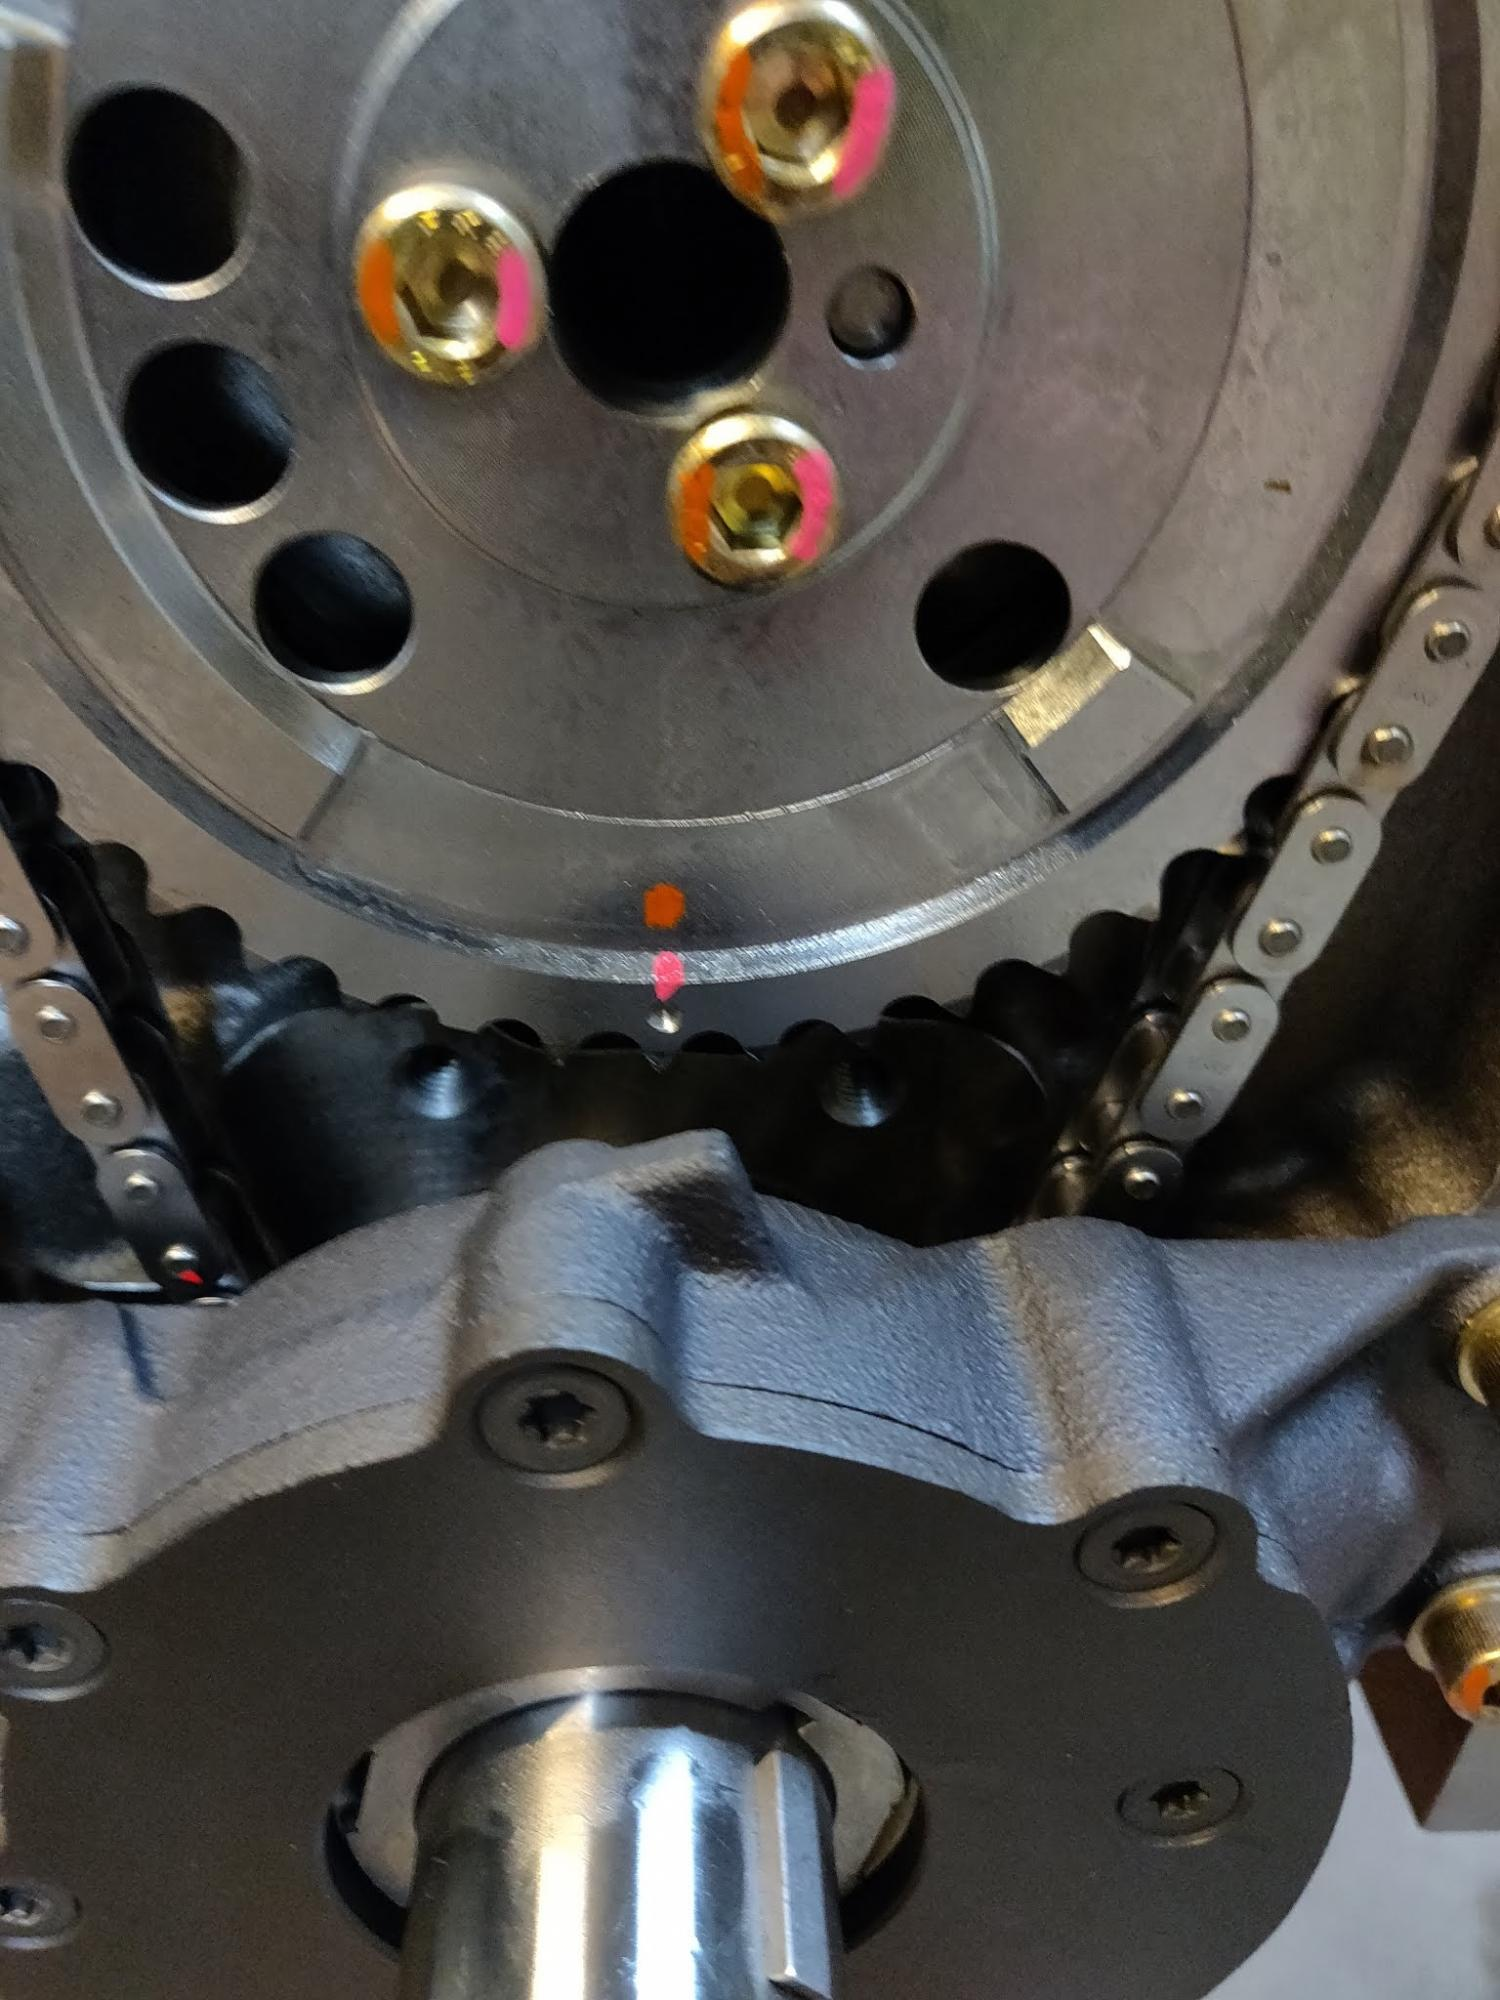 No timing chain tensioner or damper??????